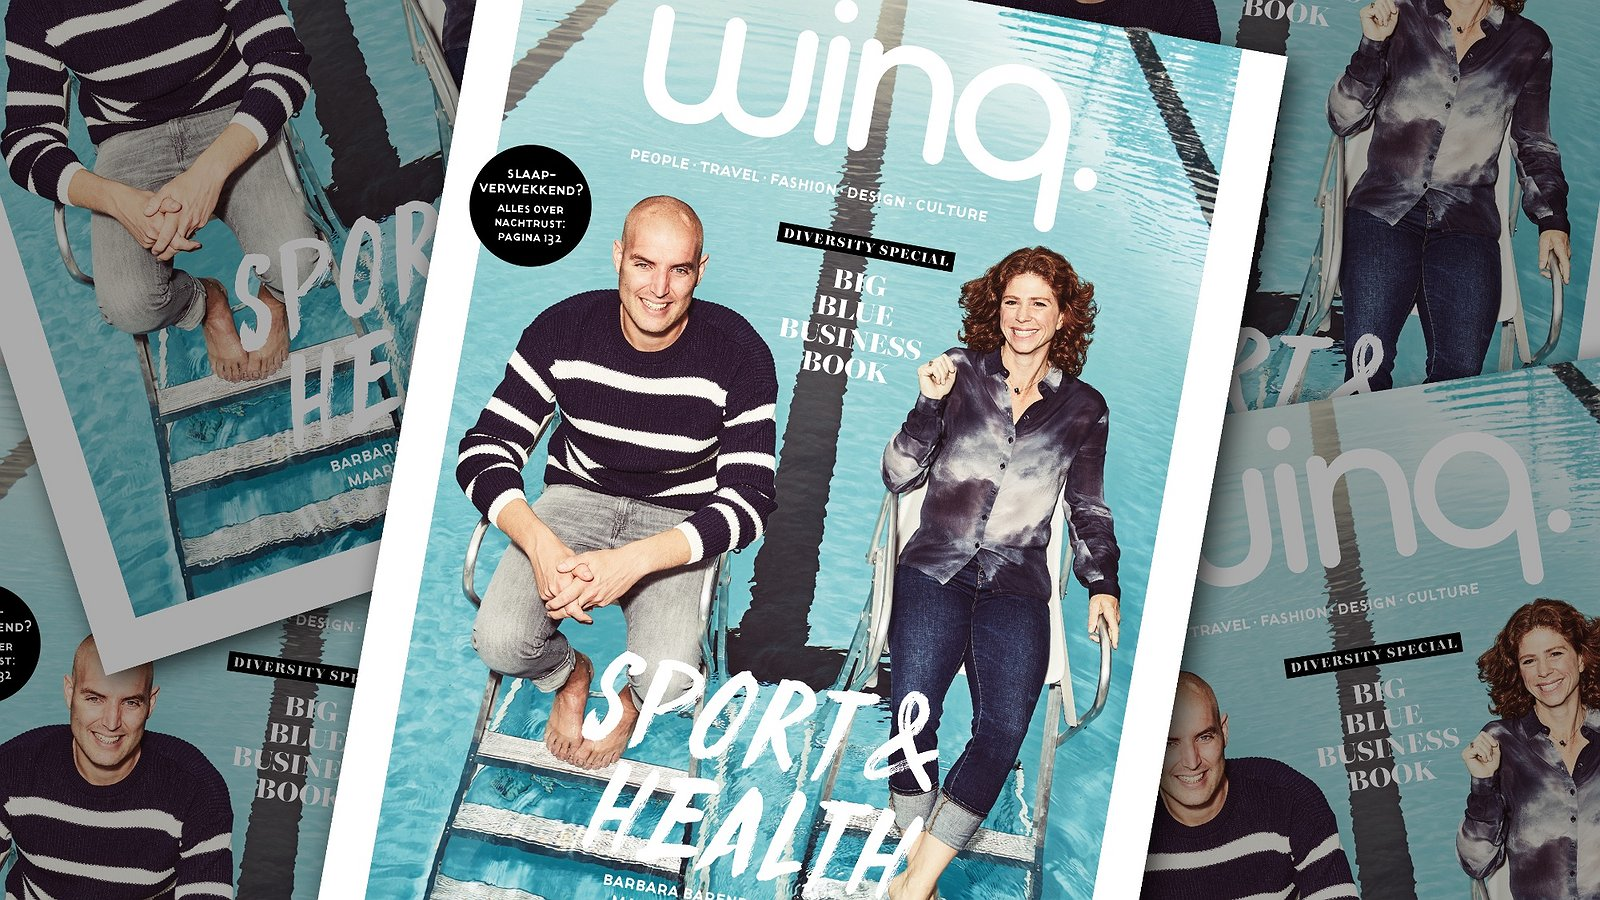 De nieuwe editie van Winq: Sport, Health, Business en alles over Gay Pride